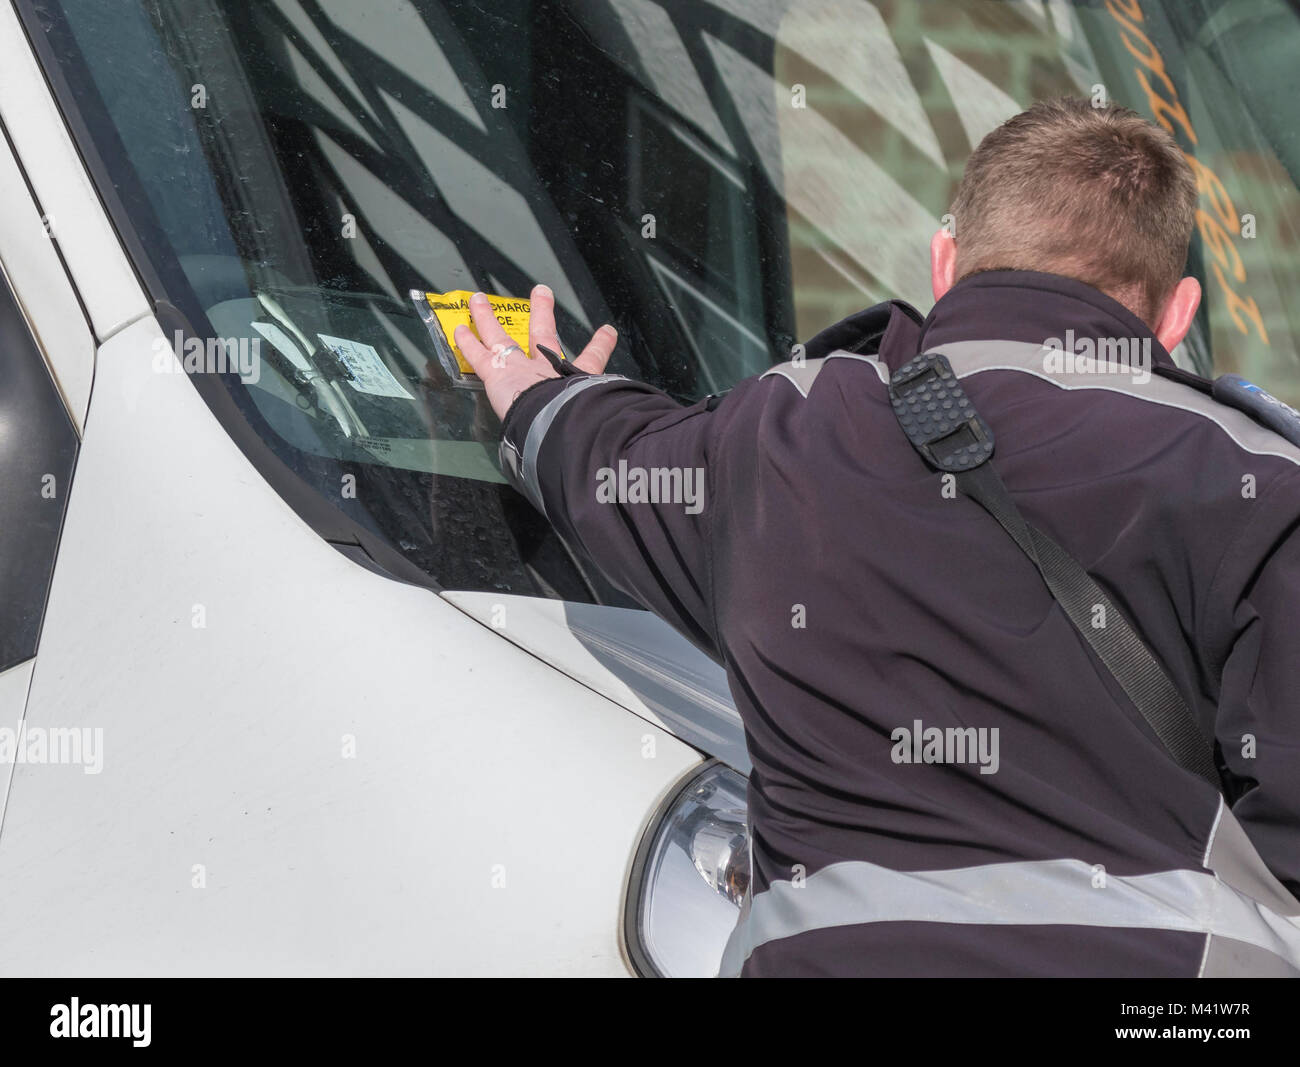 Parking warden putting a parking ticket penalty notice on a car window in England, UK. Parking enforcement officer. - Stock Image